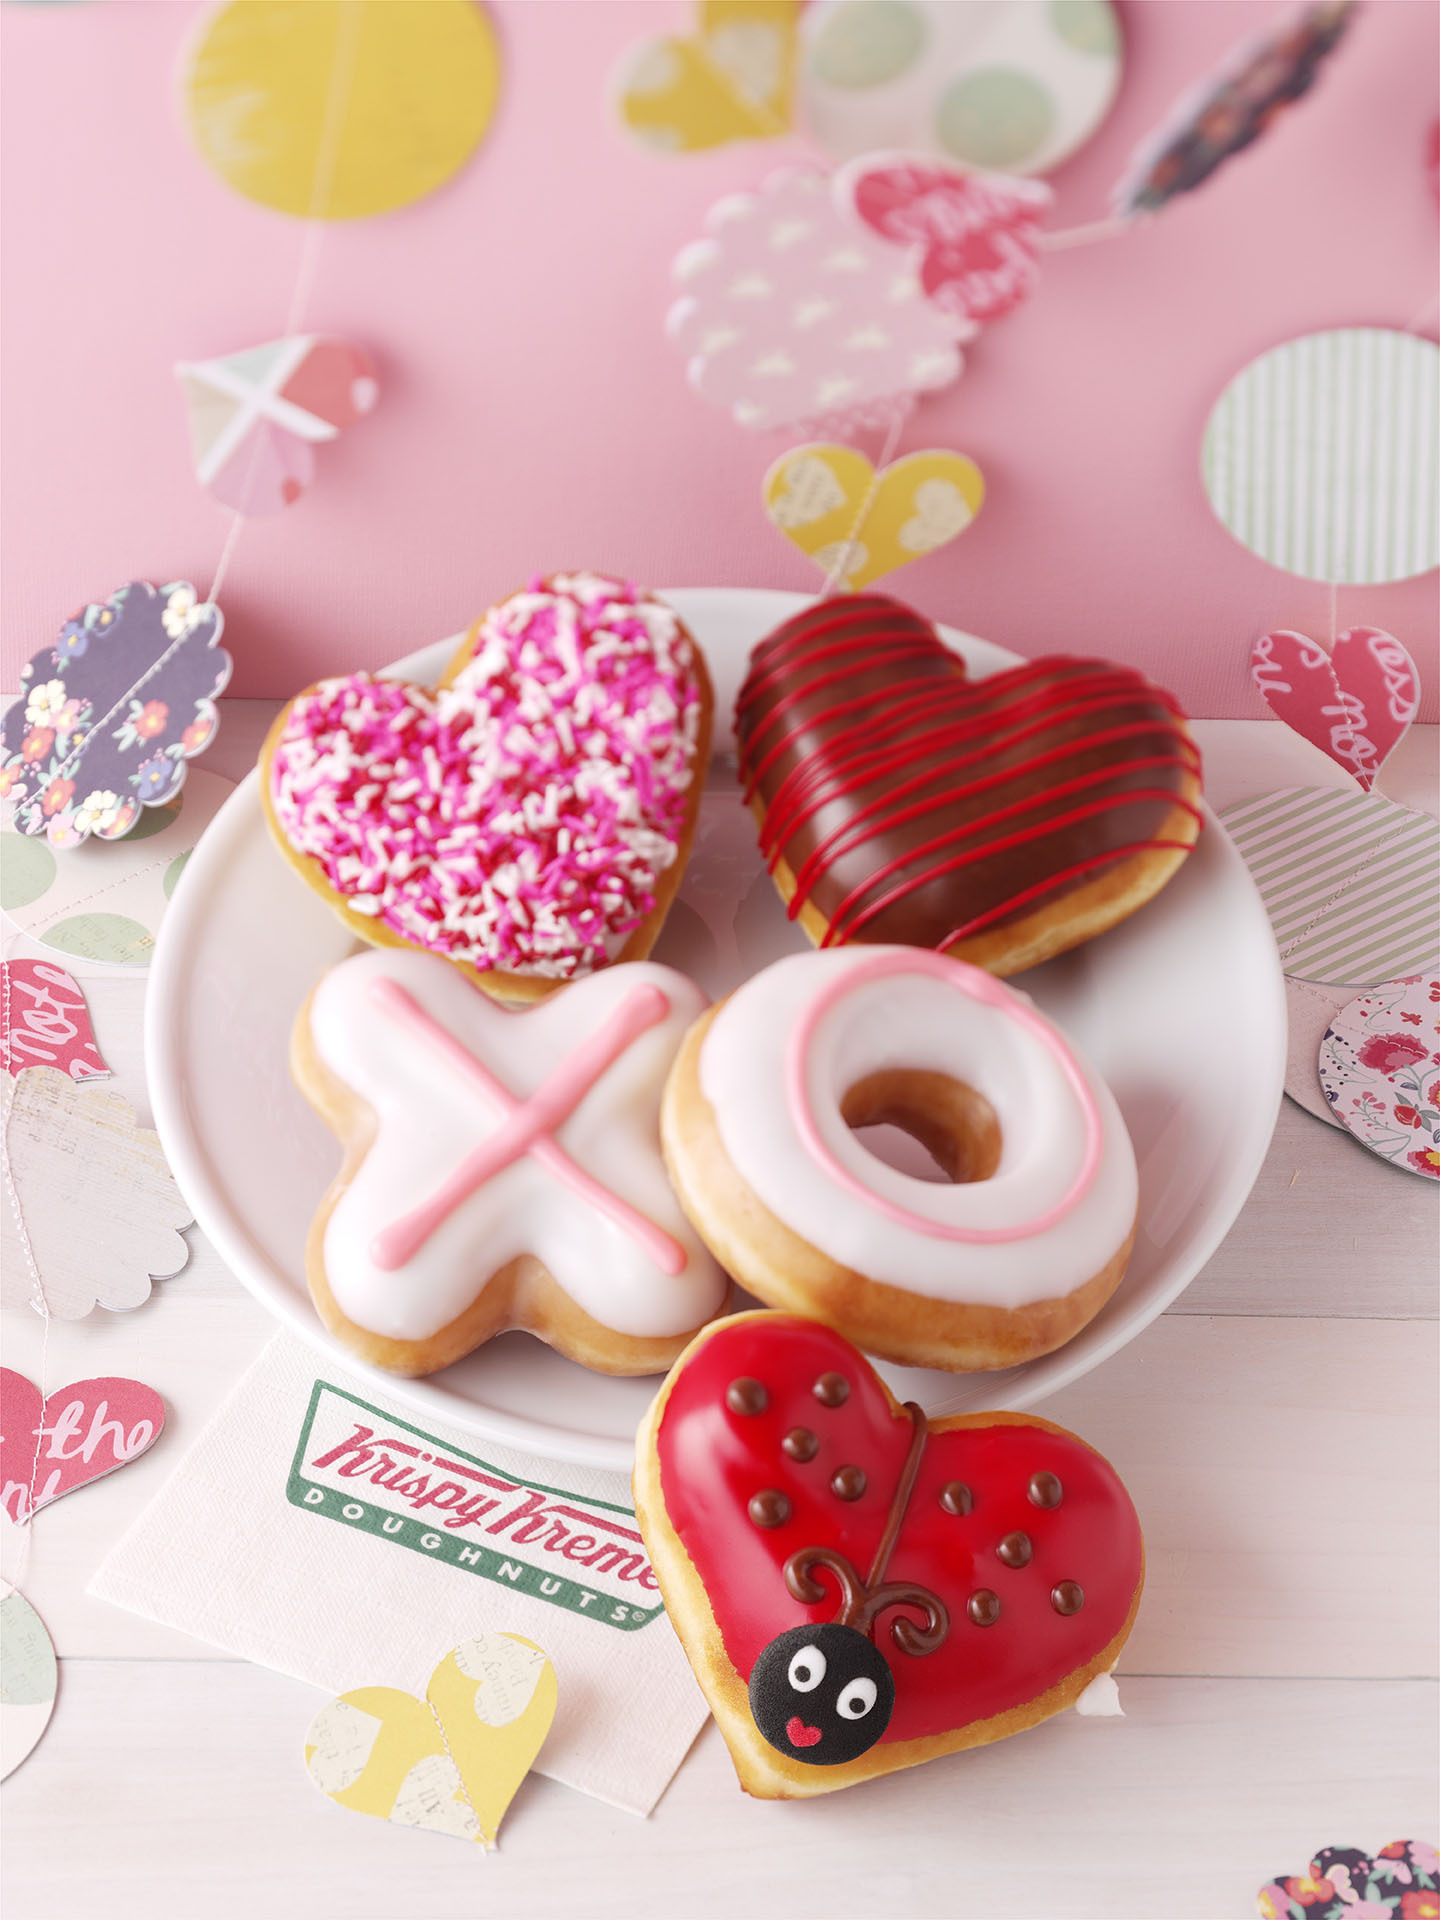 Taste And See Valentine S Day Expressions Of Affection At Krispy